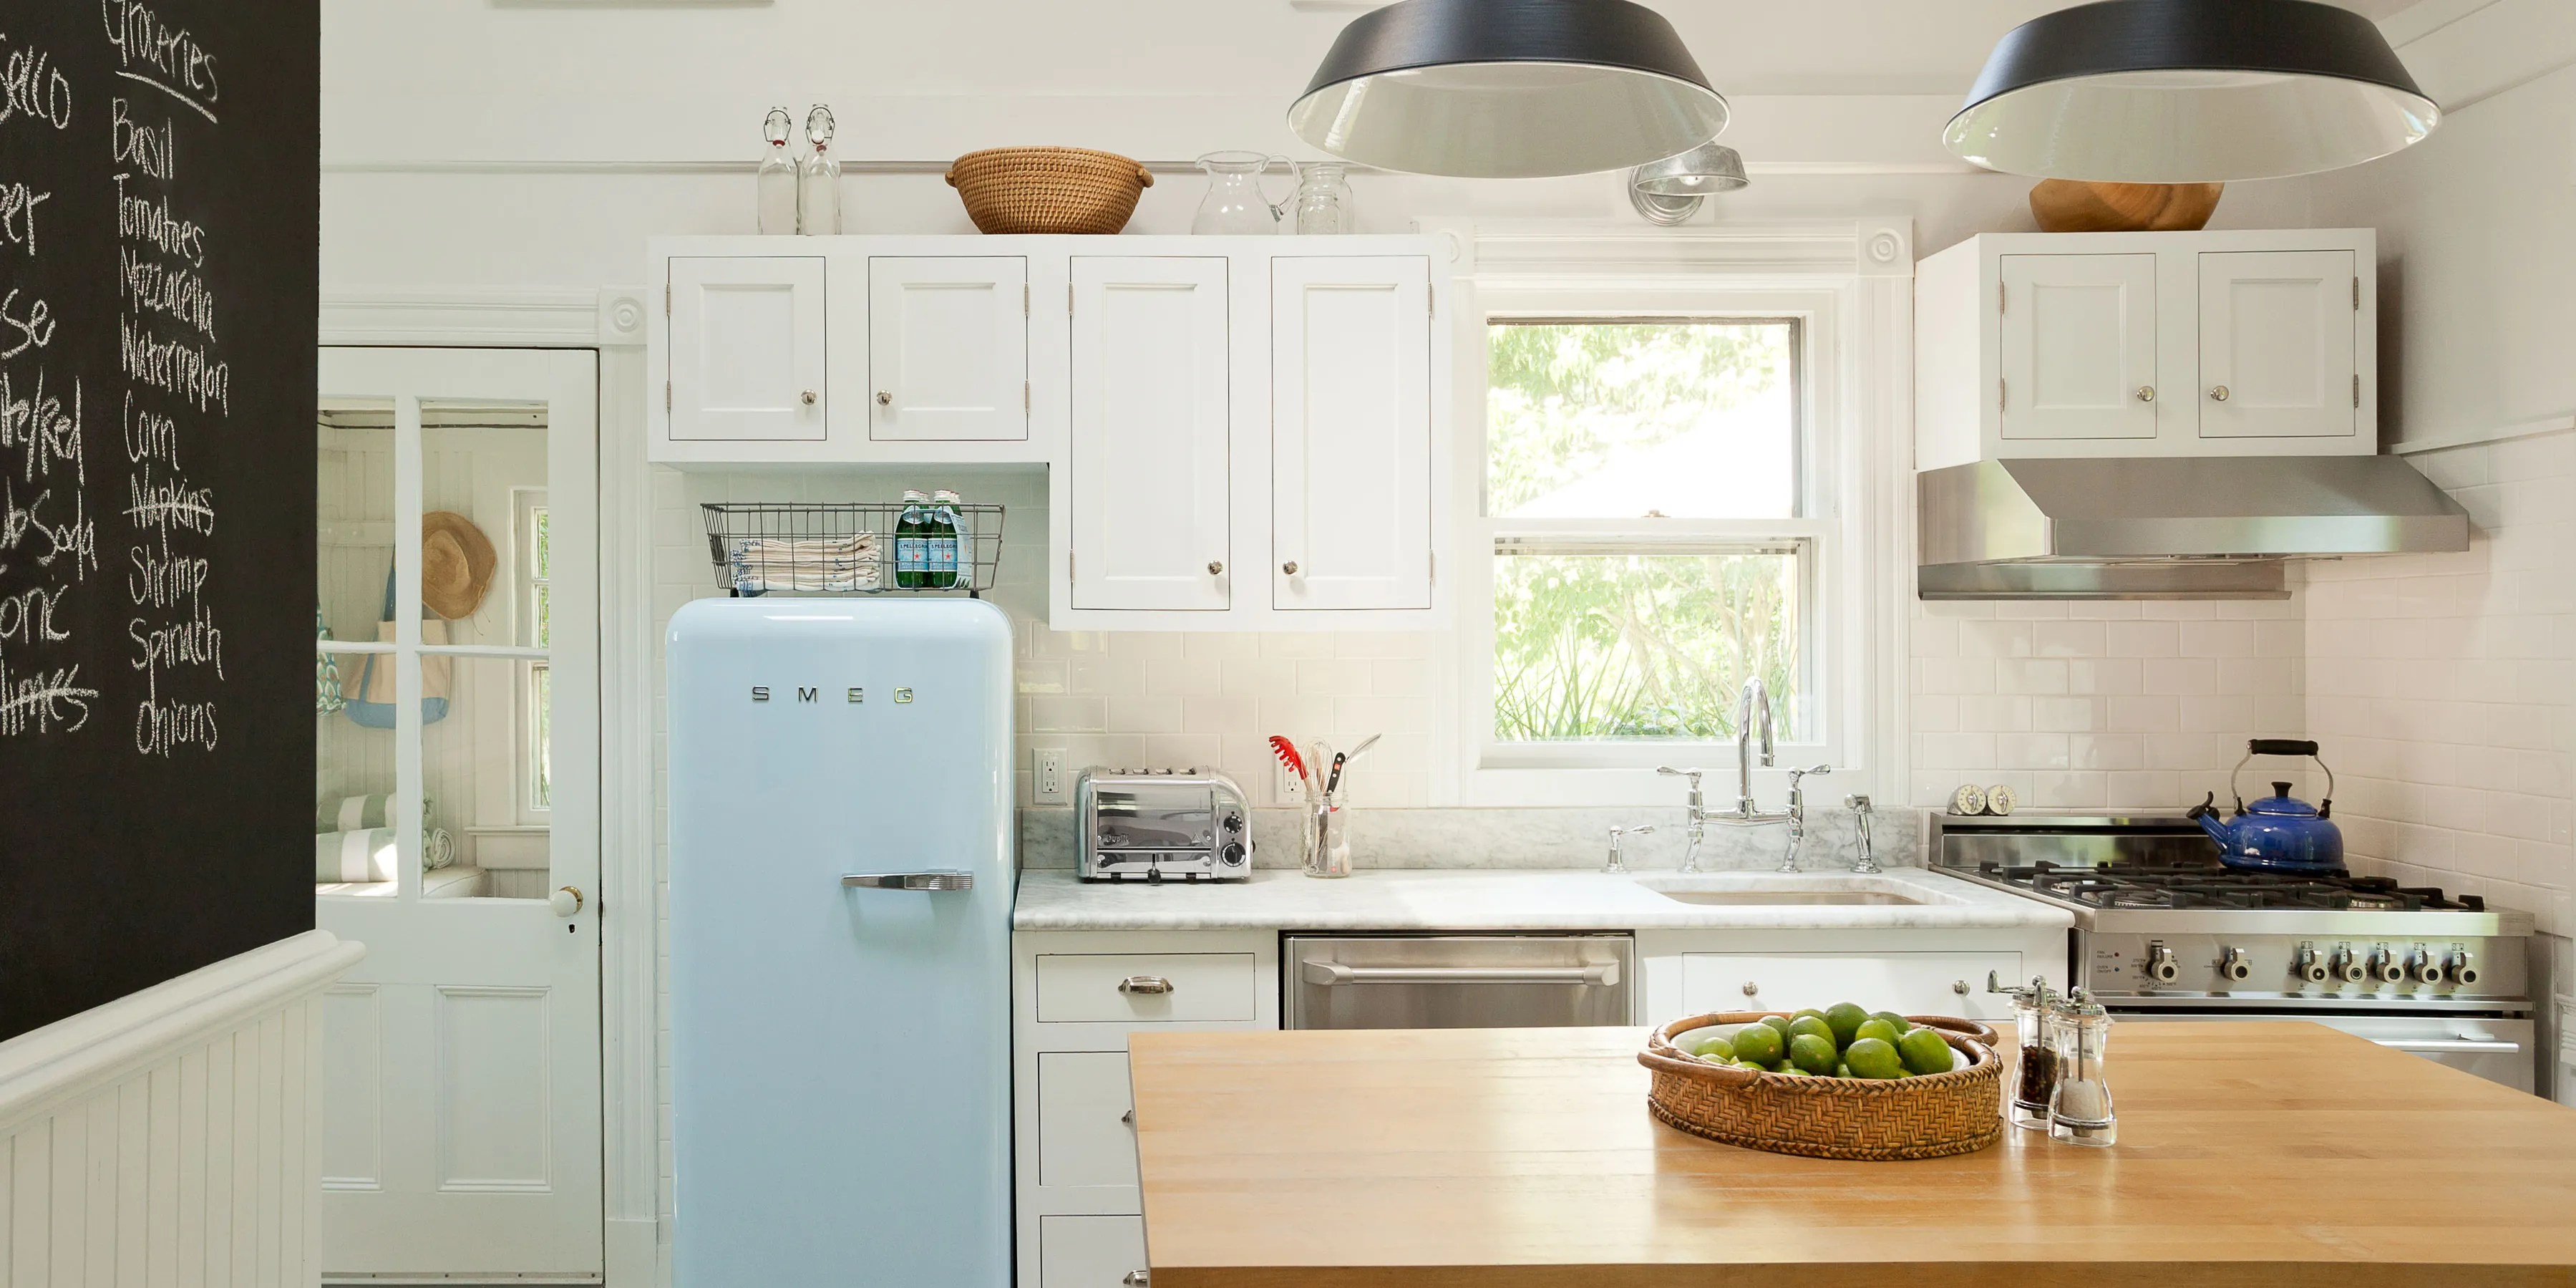 Kitchen Design For Small Narrow Kitchen The Best Small Kitchen Design Ideas For Your Tiny Space